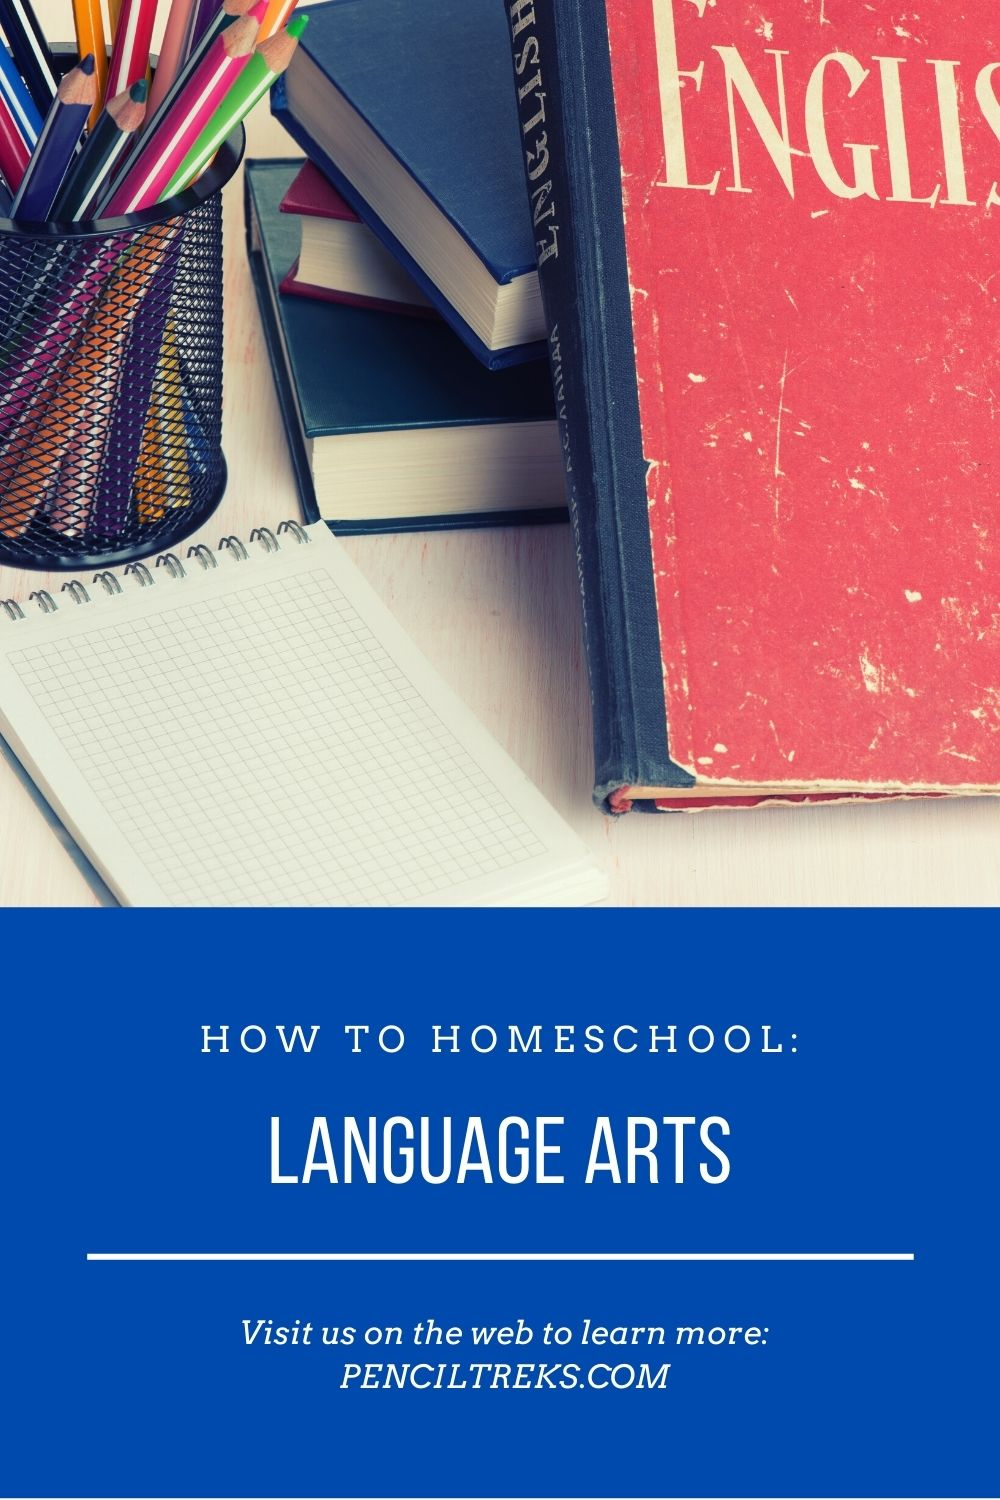 Everything you need to know about homeschooling language arts is right here. From homeschool reading and writing curriculum to general information on good books to read with your child-- everything is right here.